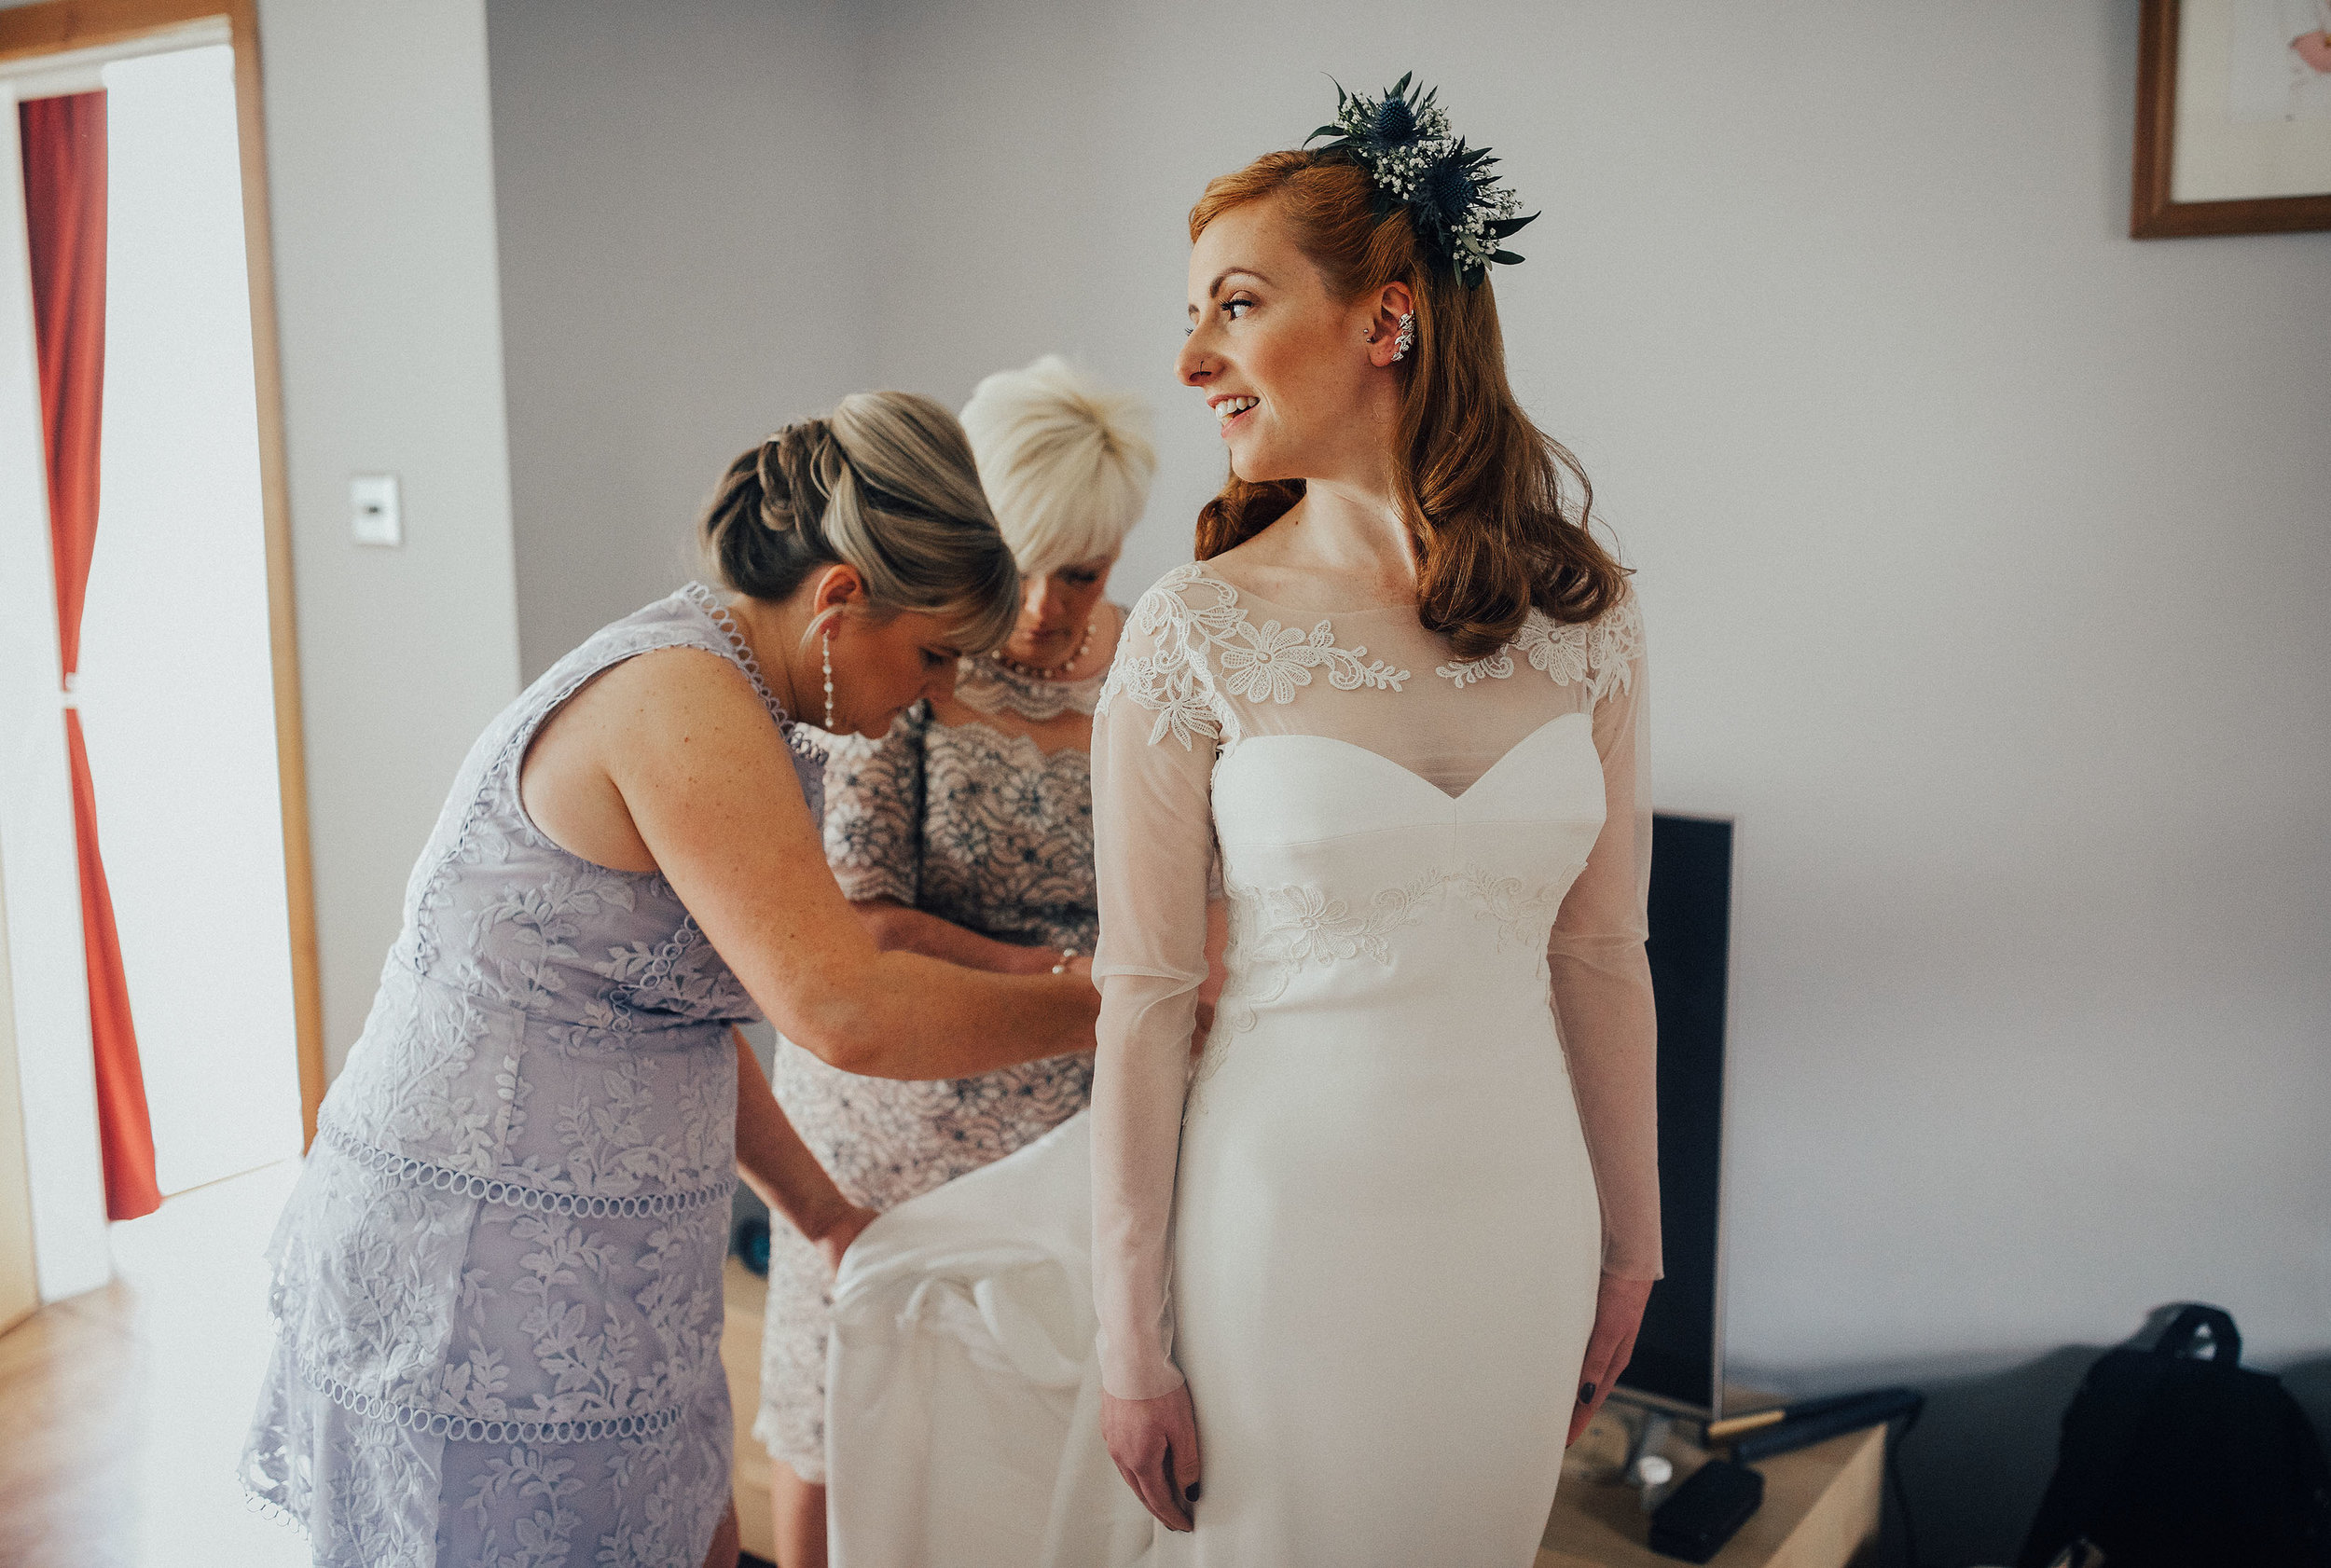 SAME_SEX_WEDDING_PHOTOGRAPHER_SLOANS_GLASGOW_PJ_PHILLIPS_PHOTOGRAPHY_15.jpg